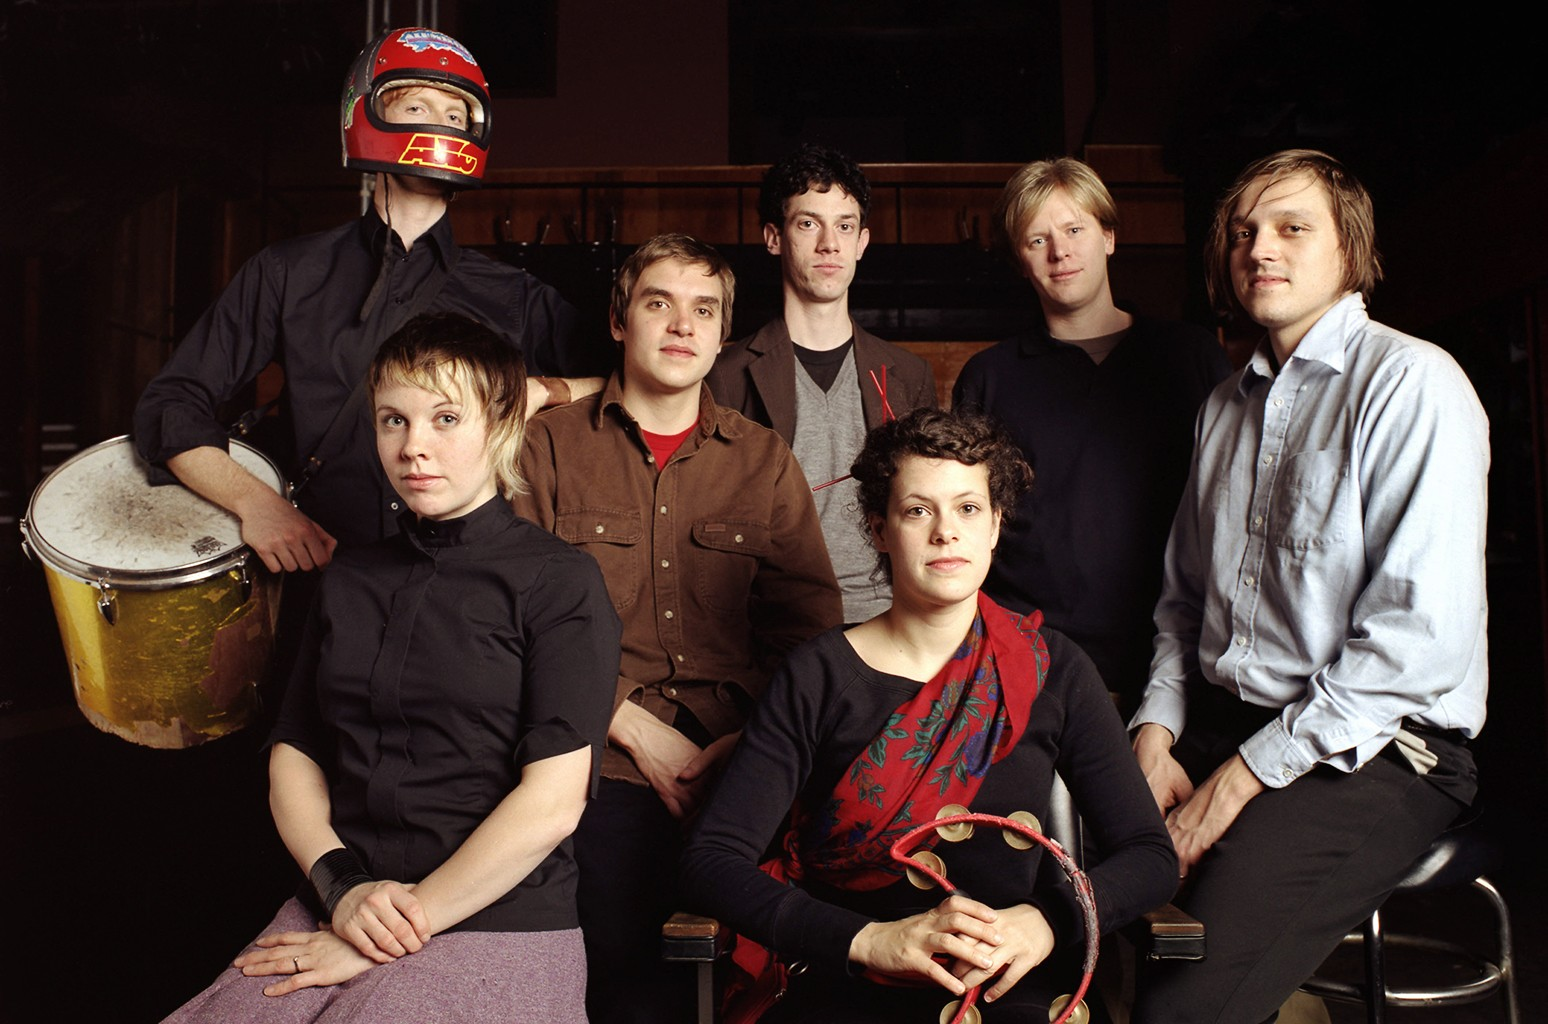 Arcade Fire photographed in 2005.